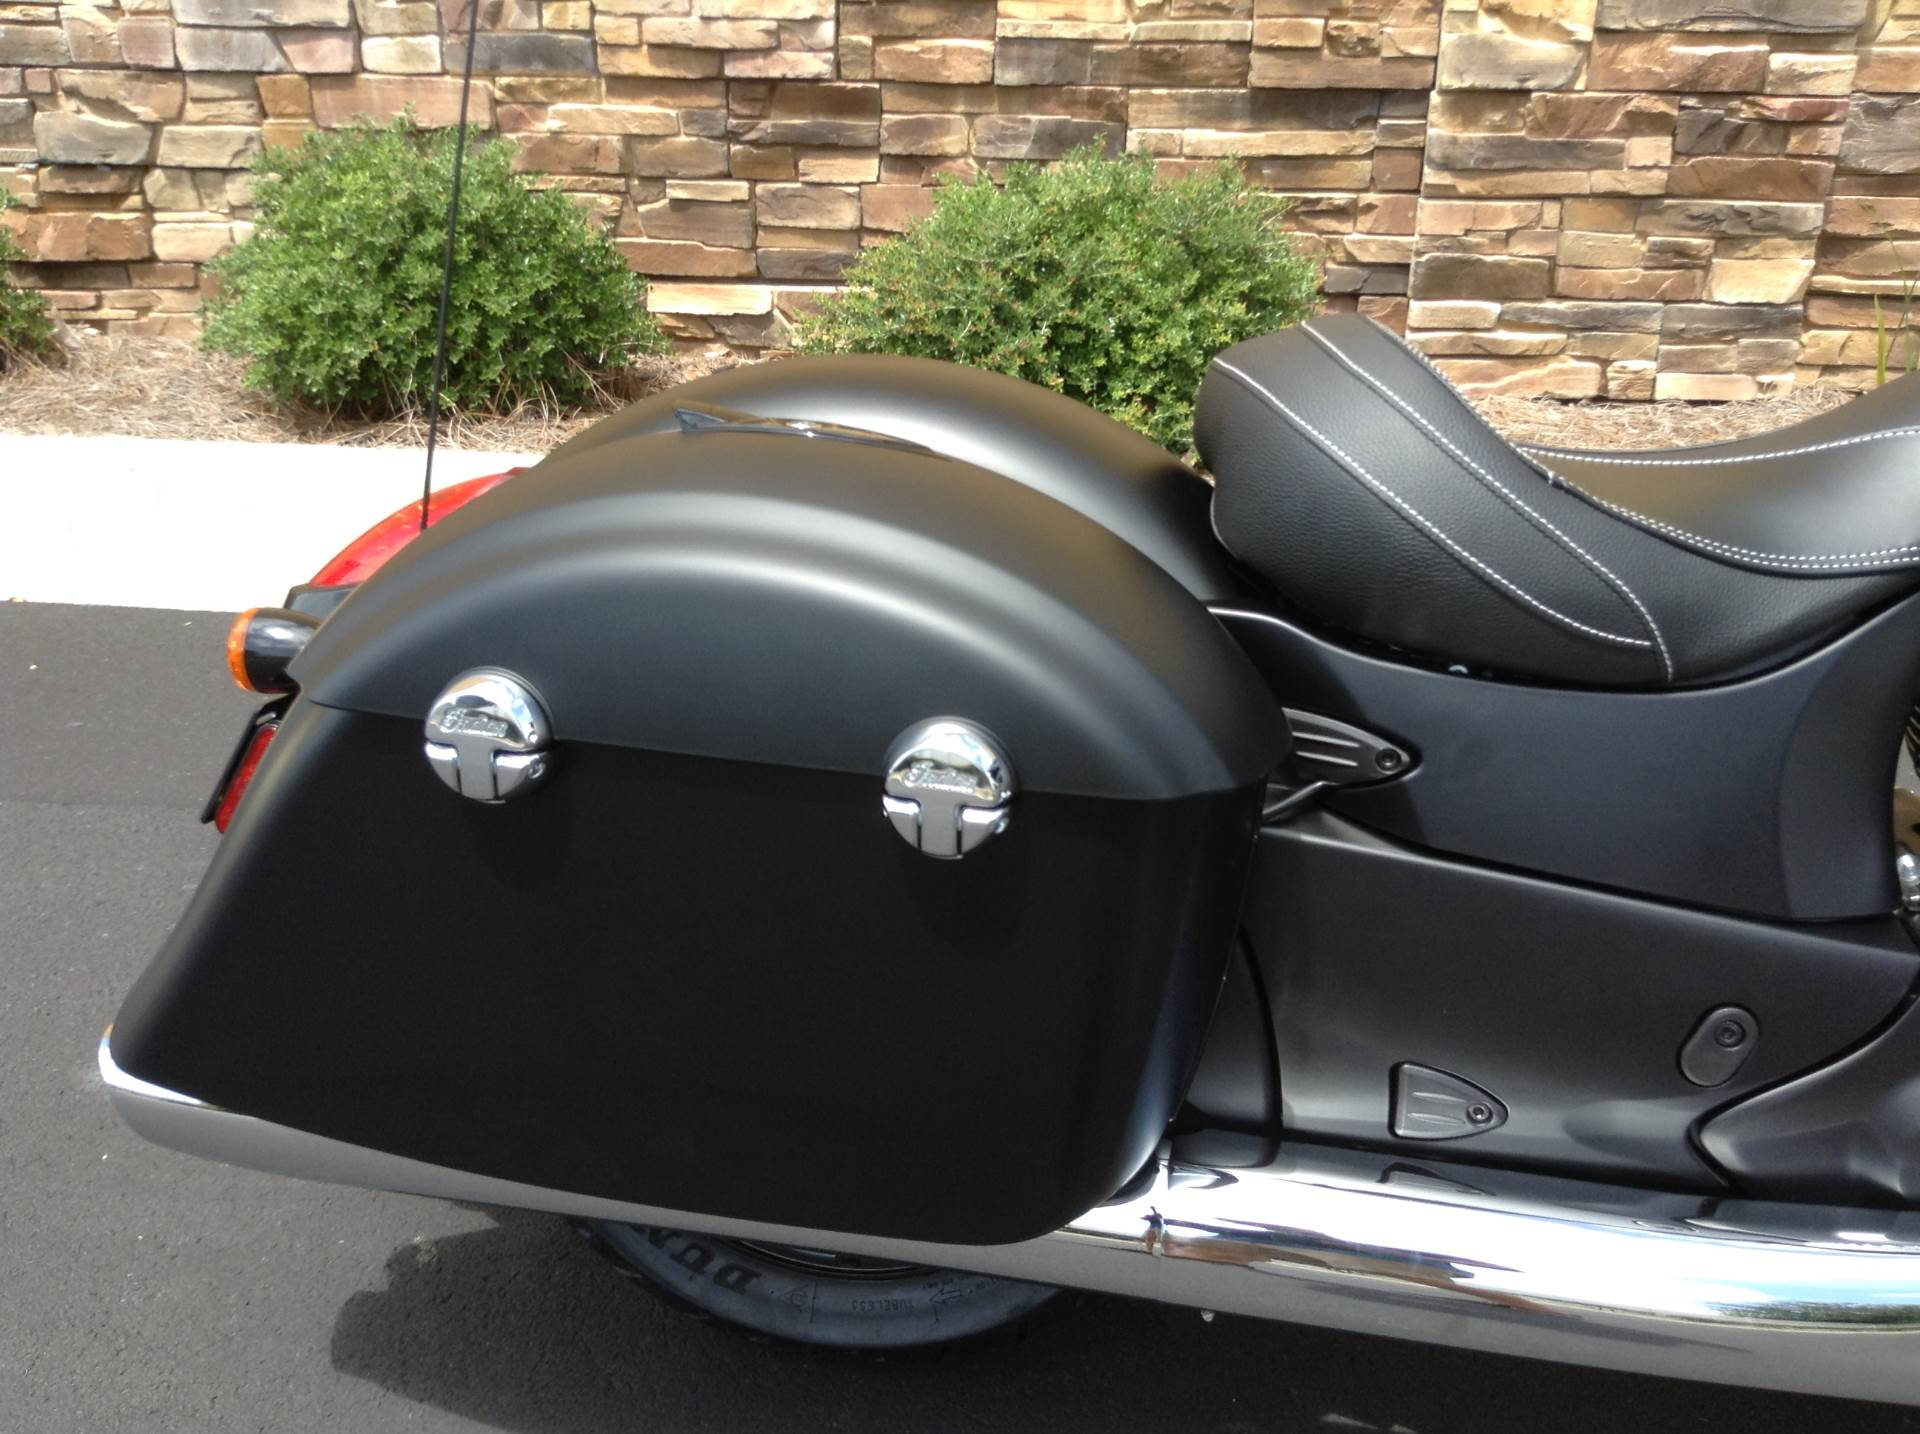 2018 Indian CHIEFTAIN DARK HORSE in Panama City Beach, Florida